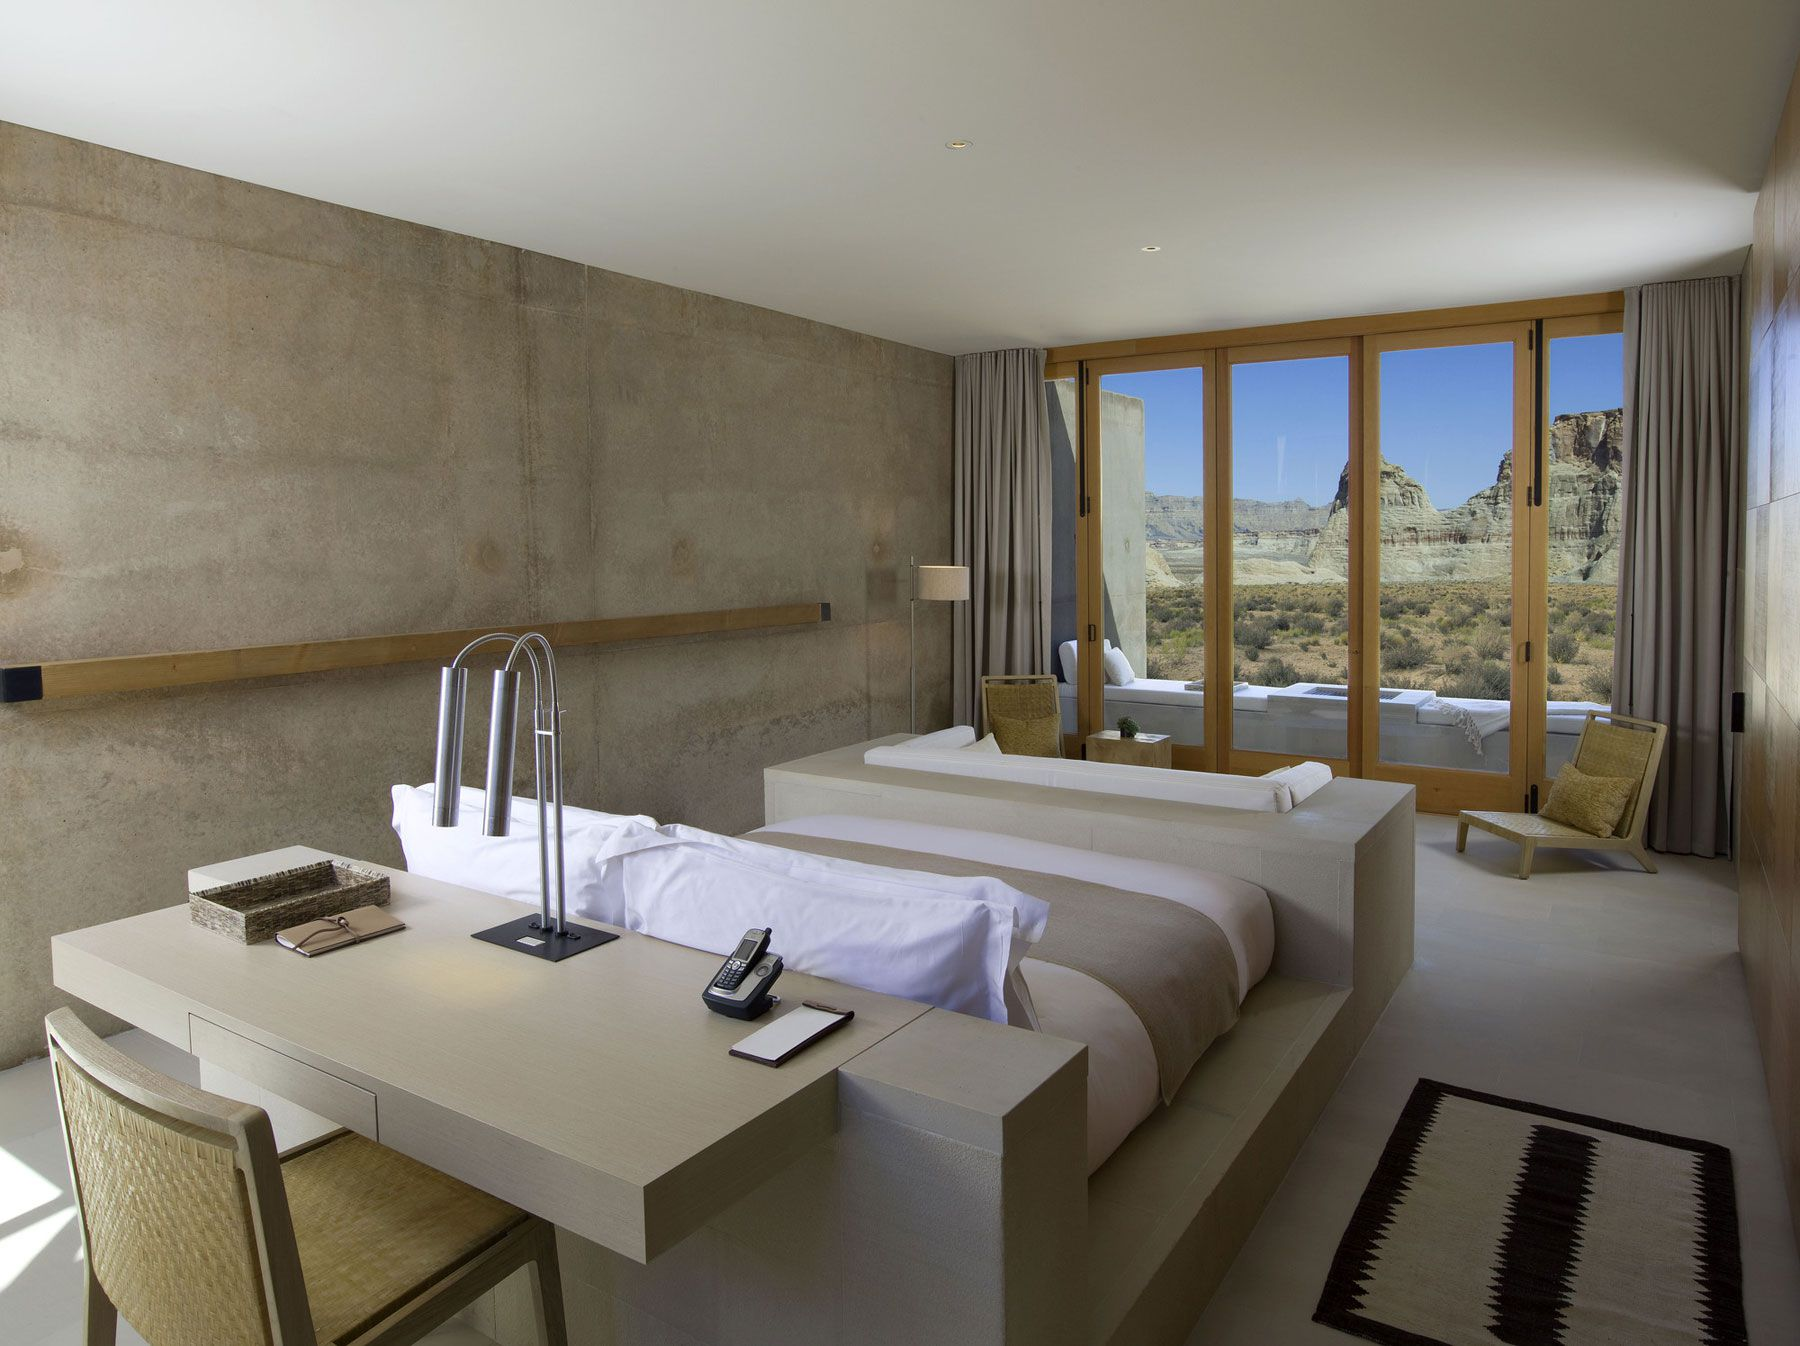 Amangiri-Luxury-Resort-Hotel-in-Canyon-Point-08